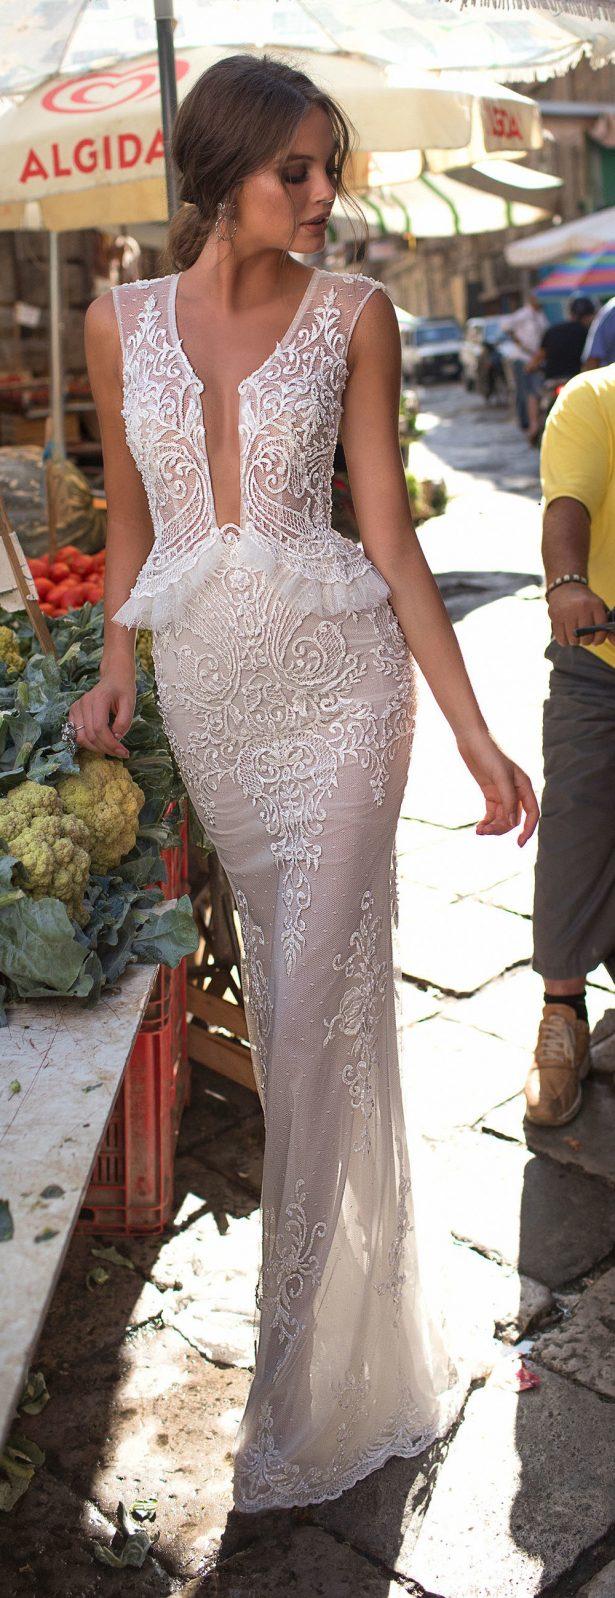 MUSE by Berta Sicily Wedding Dress Collection